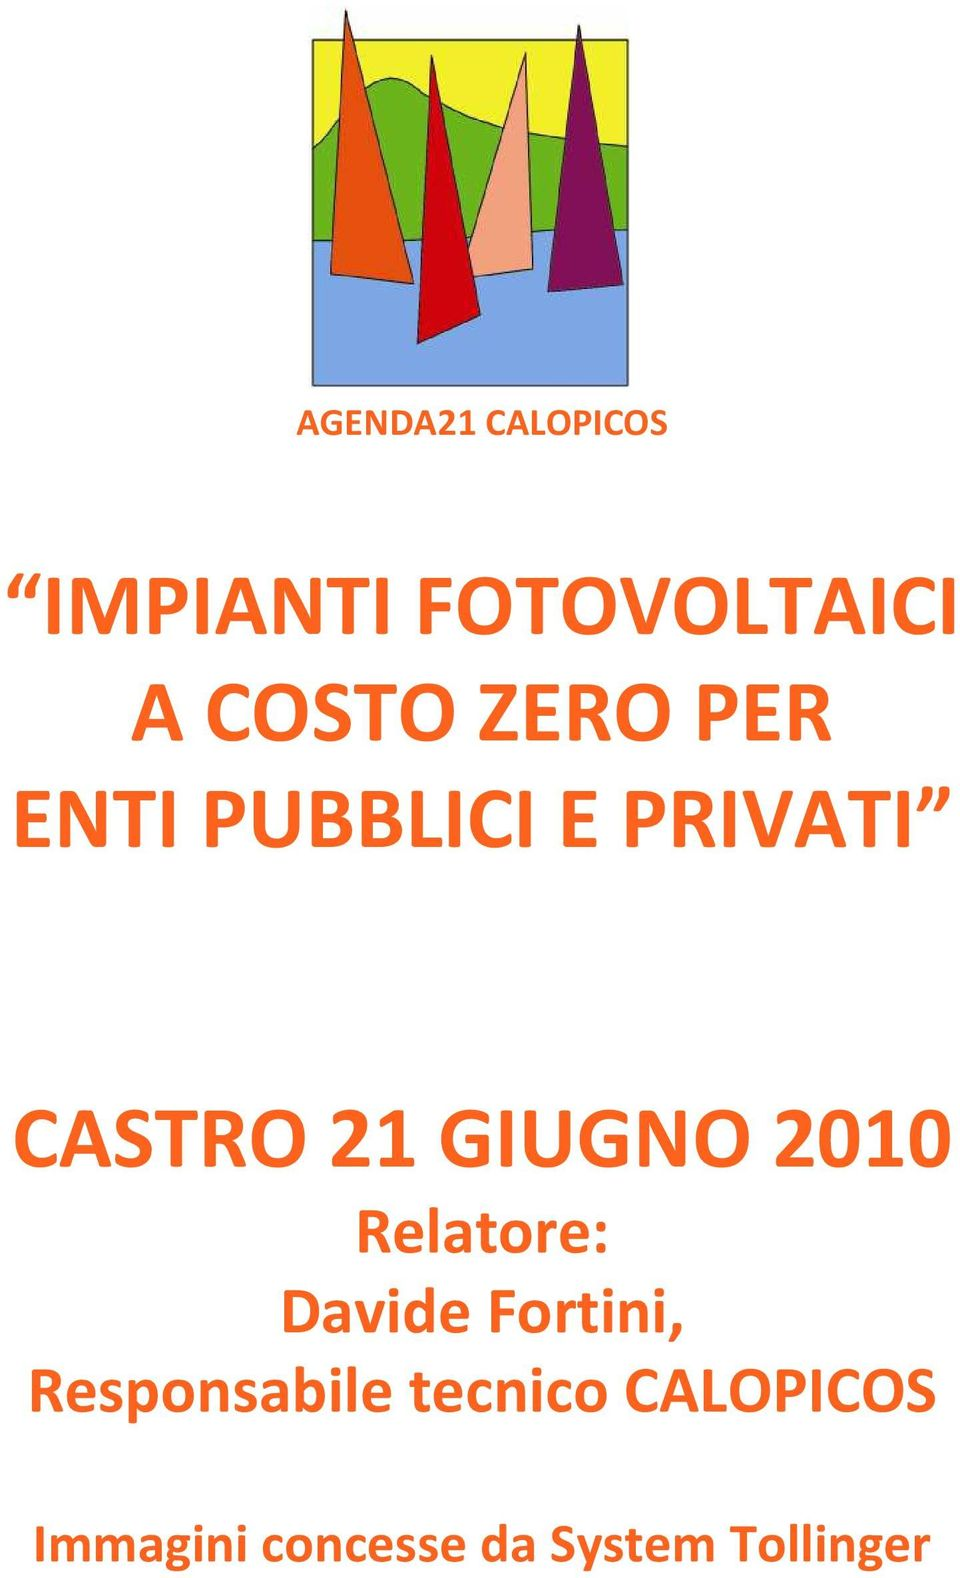 2010 Relatore: Davide Fortini, Responsabile